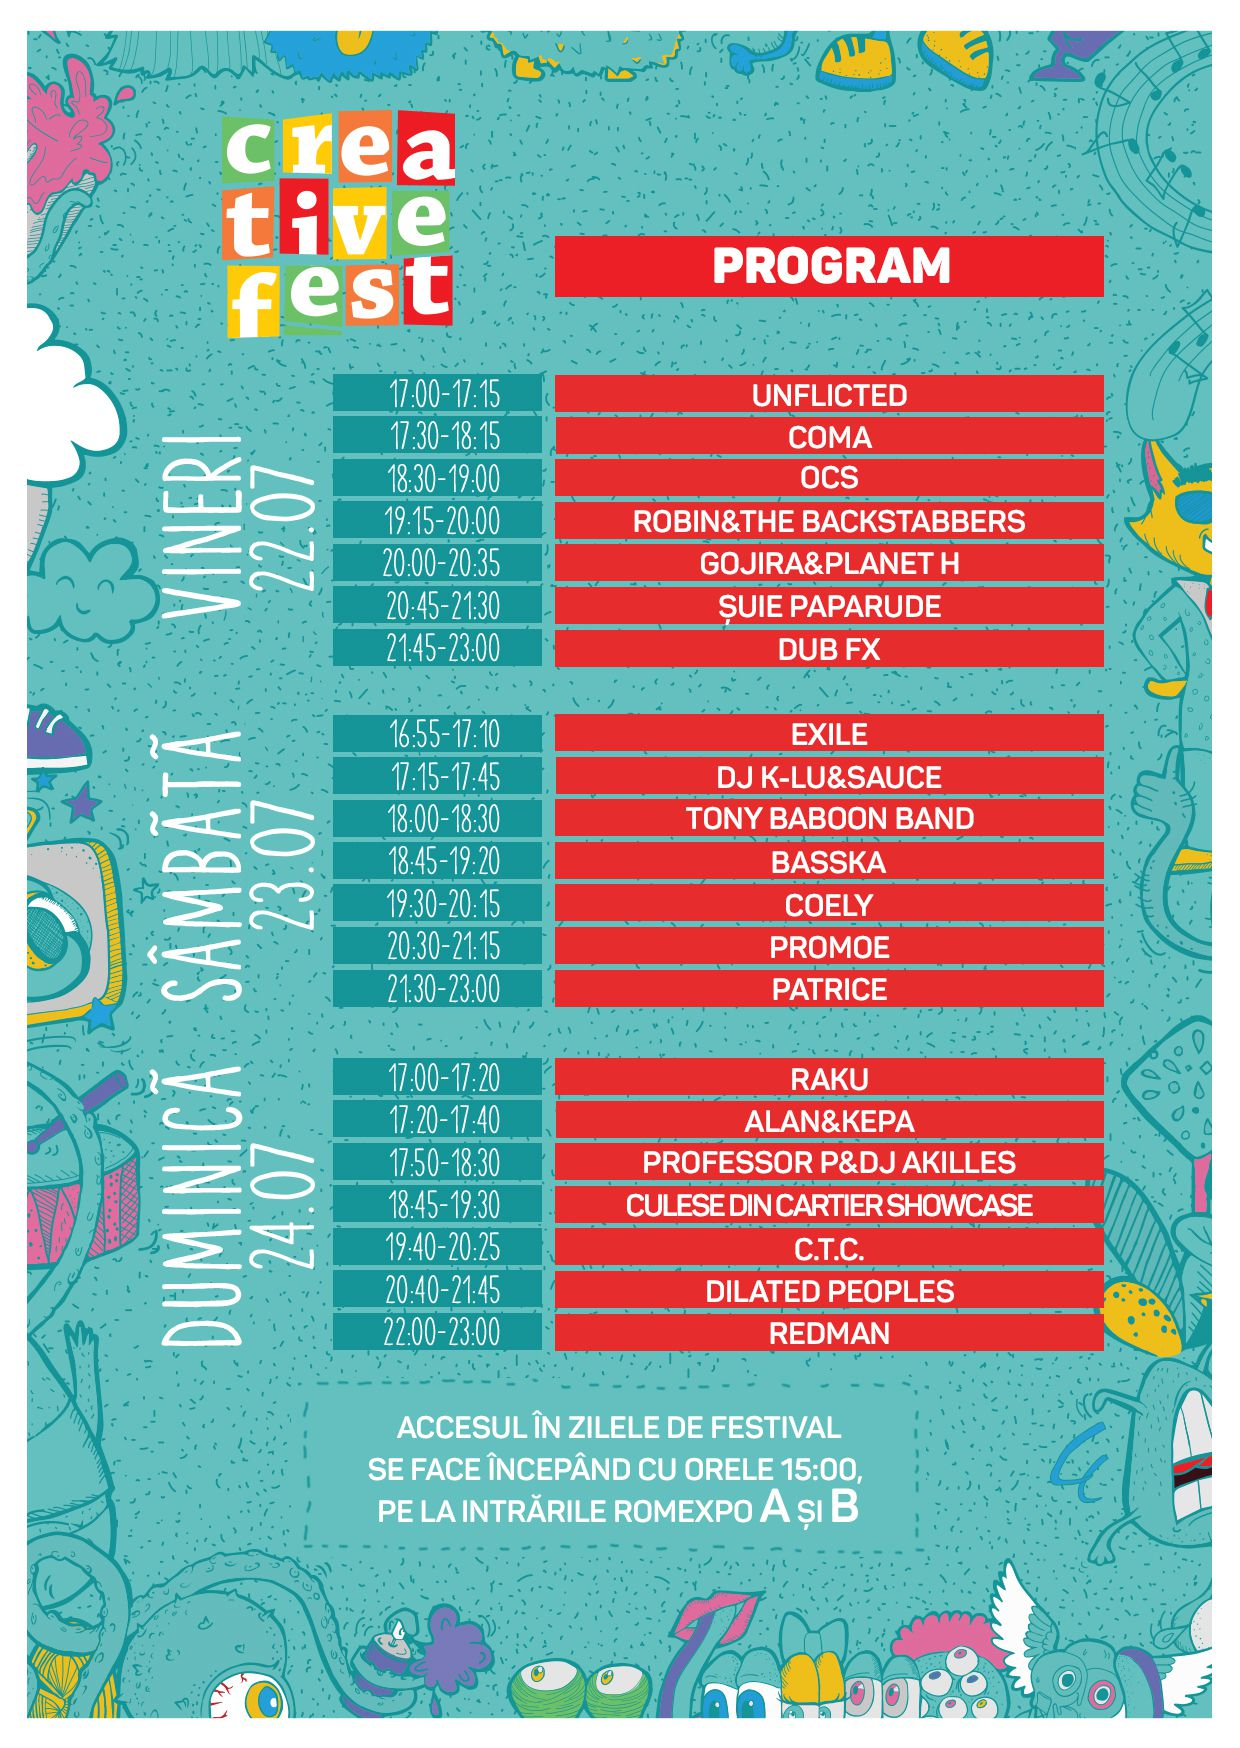 Flyer program Creative Fest